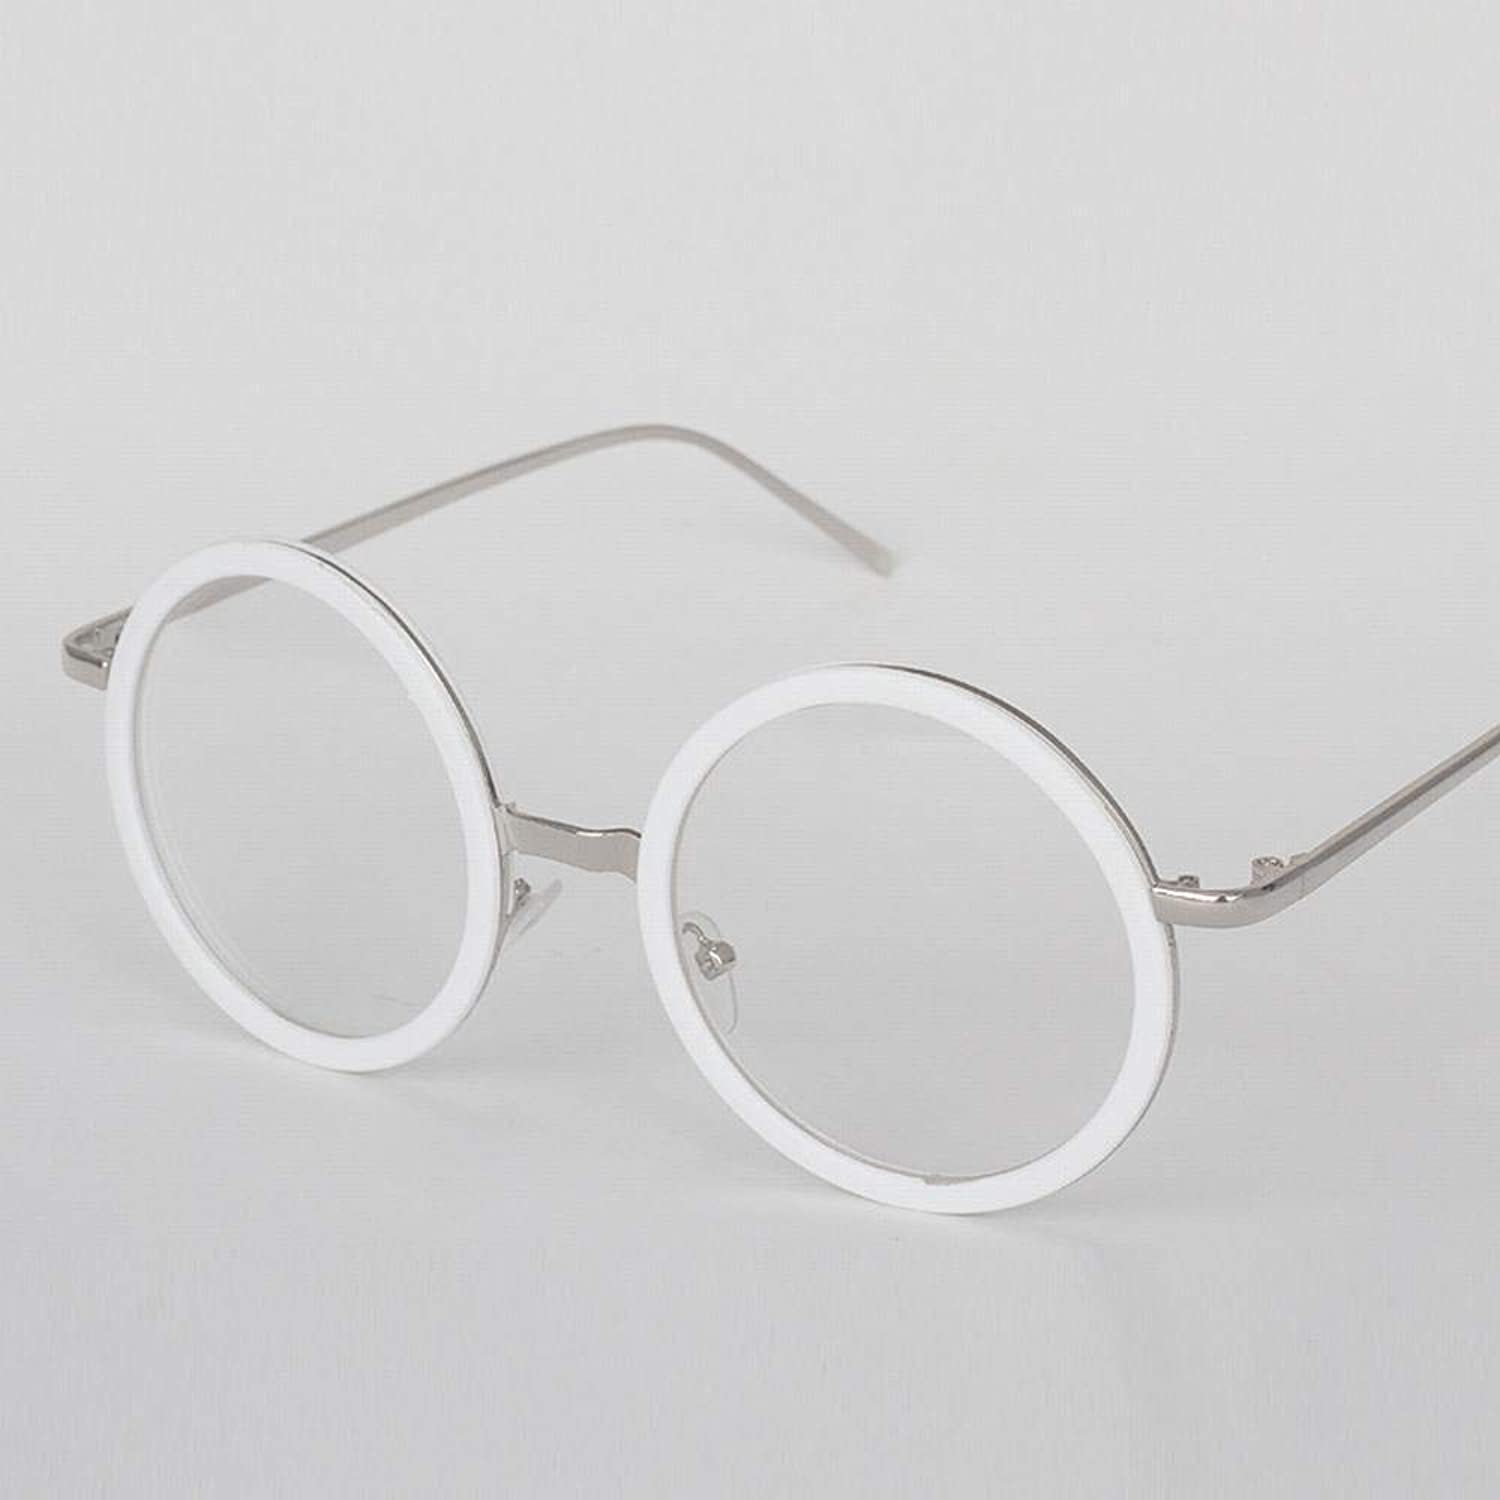 College Round Flat Glasses Frame, Lens Width 50mm. Sunglasses (color   Silver White)